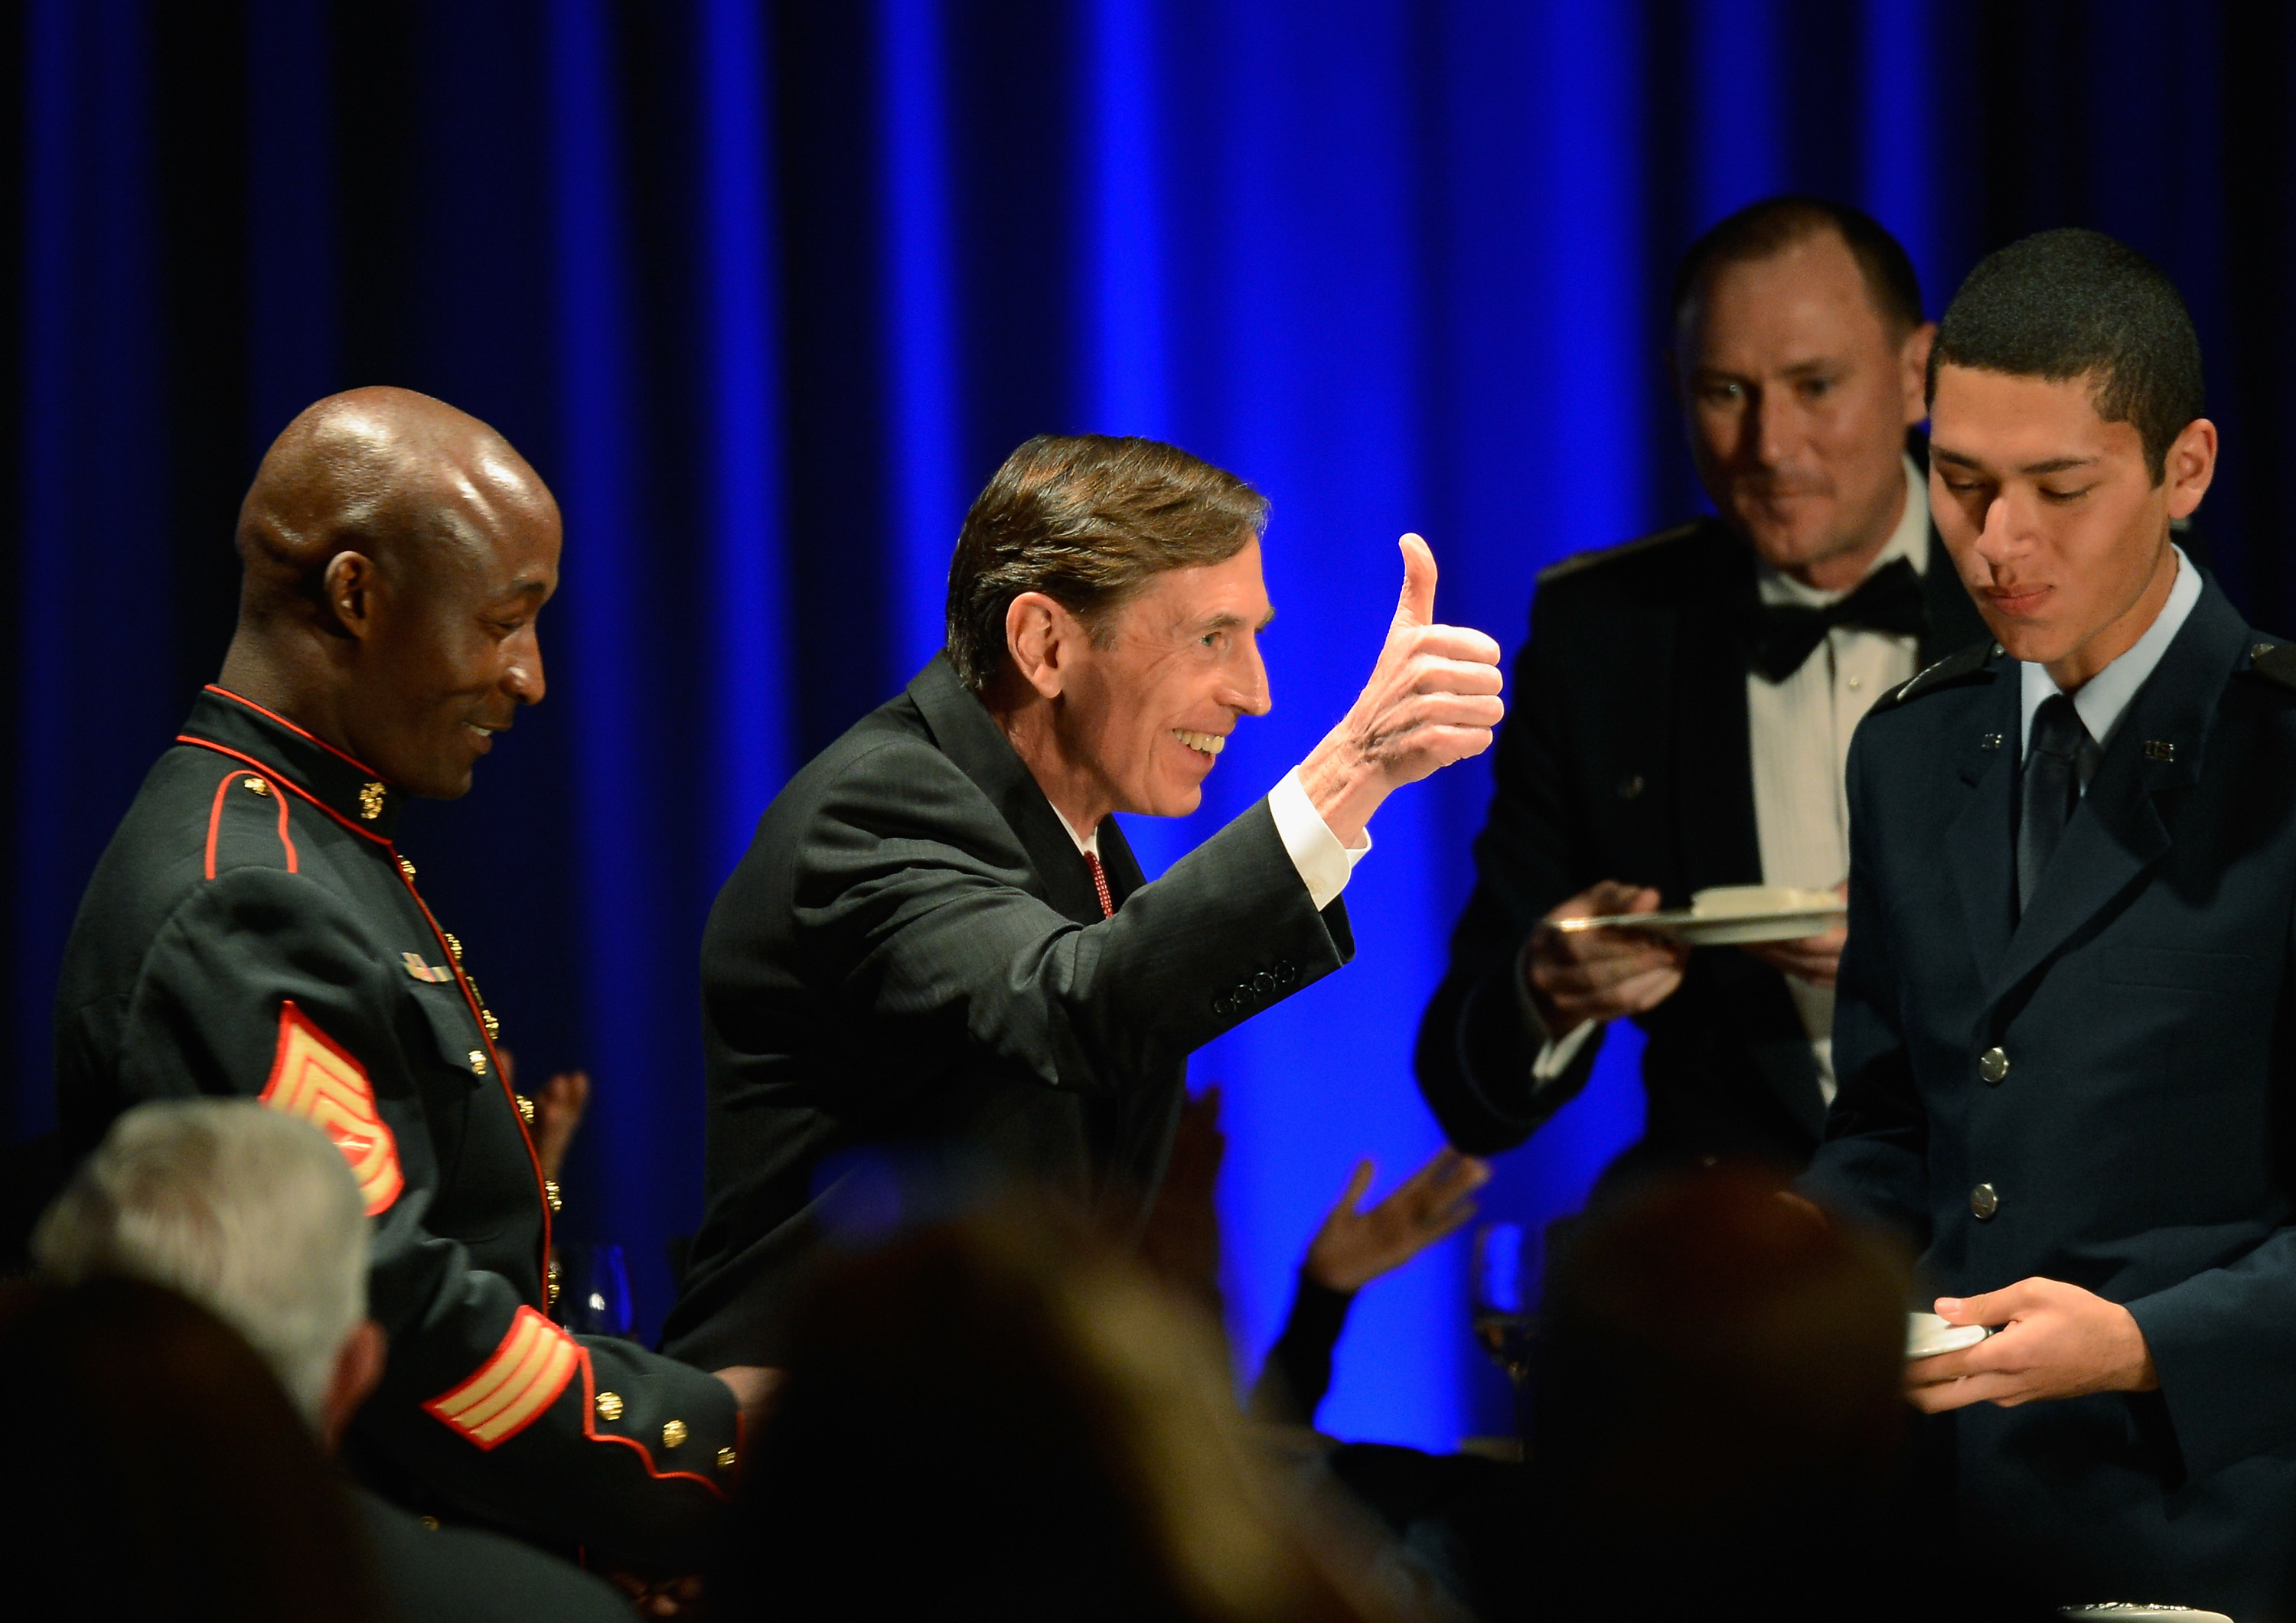 David Petraeus, shown here at an event in March 2013, resigned as CIA director last fall after an investigation into e-mail cyberstalking revealed an extramarital affair.